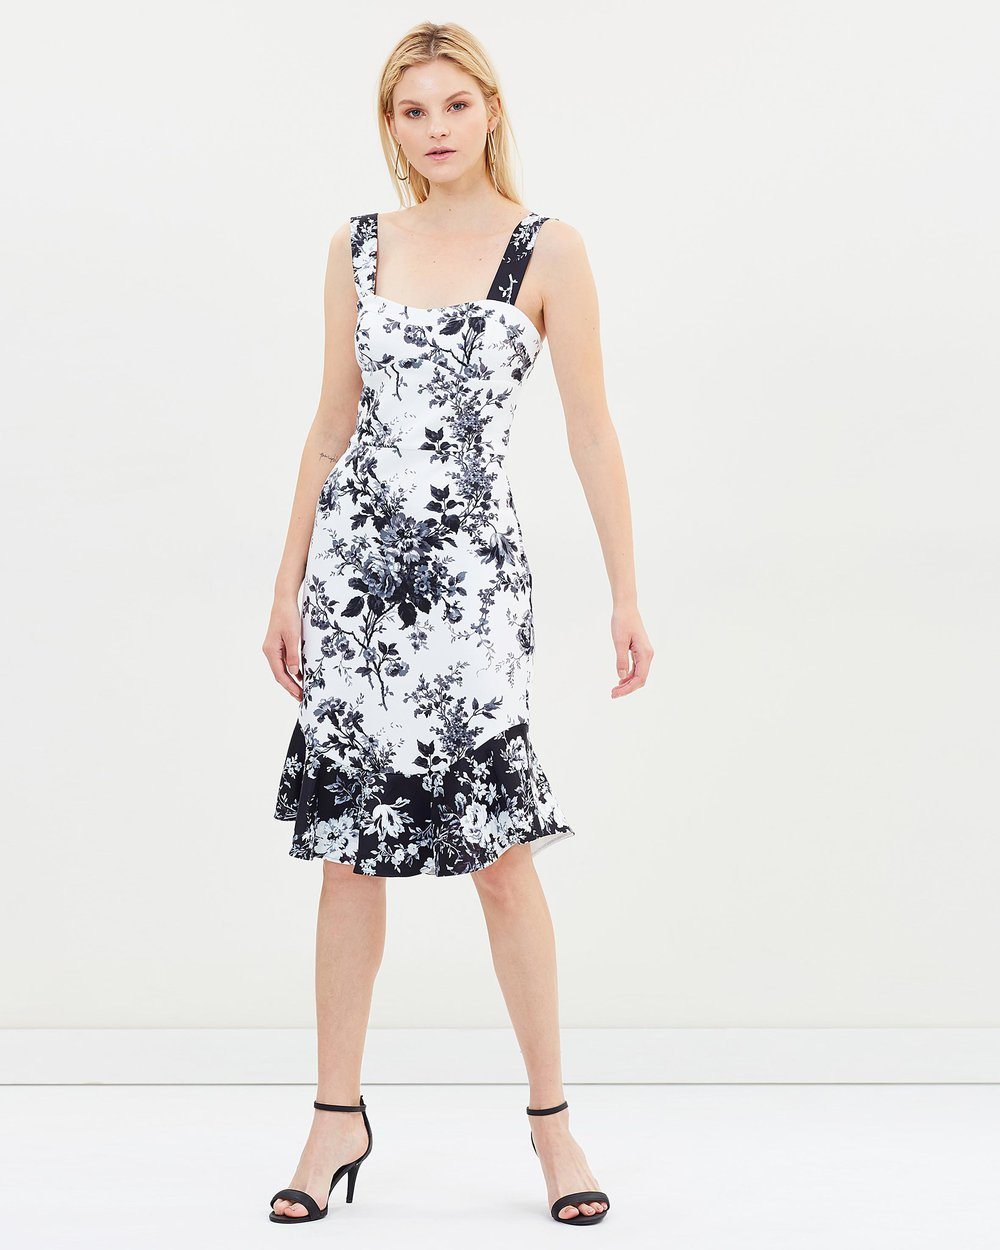 Sonnet Midi Flip Dress by Lover the Label at Maximillia eBoutique.